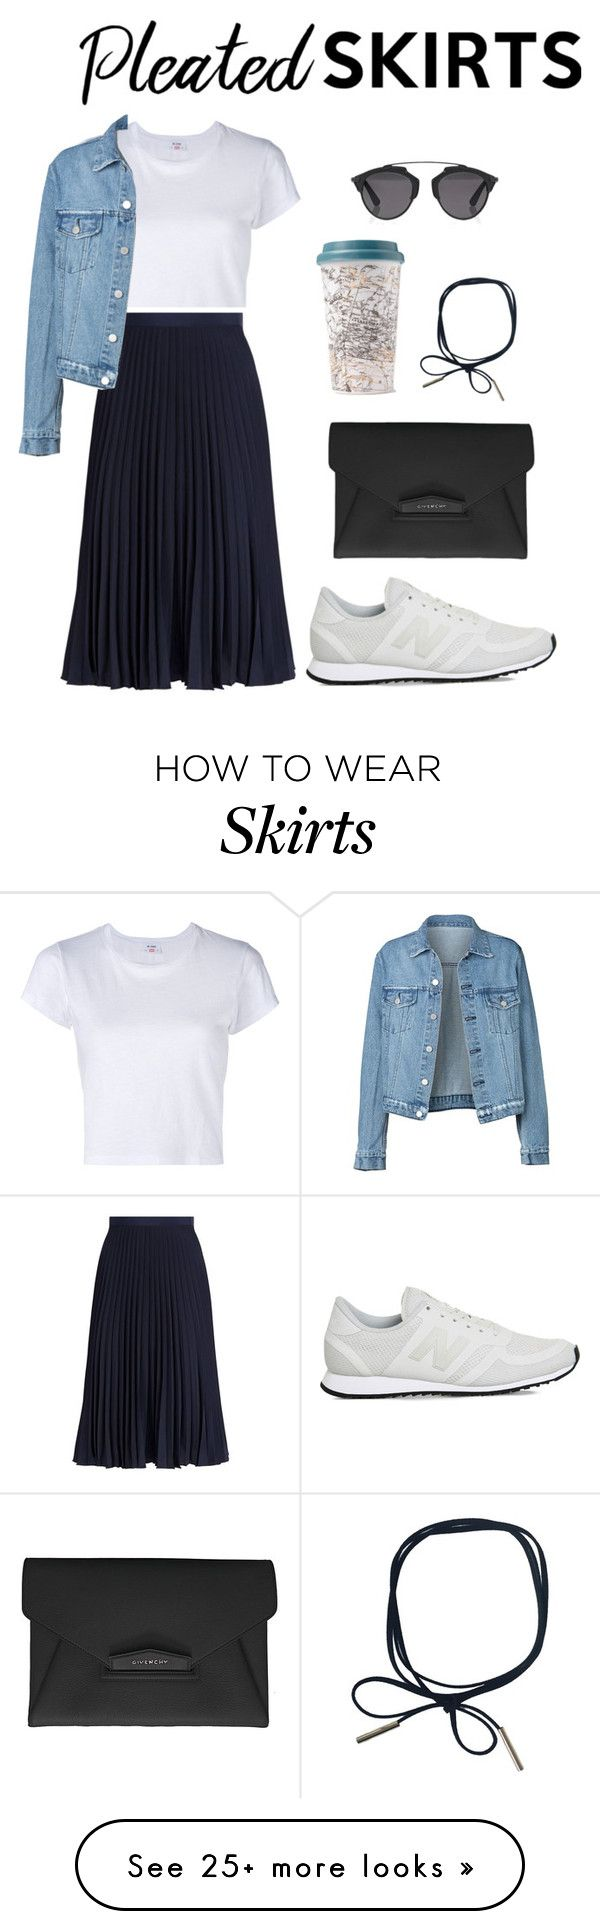 """""""Pleated skirt"""" by zerinafe on Polyvore featuring RE/DONE, MICHAEL Michael Kors, New Balance, Givenchy, Christian Dior and pleatedskirts"""